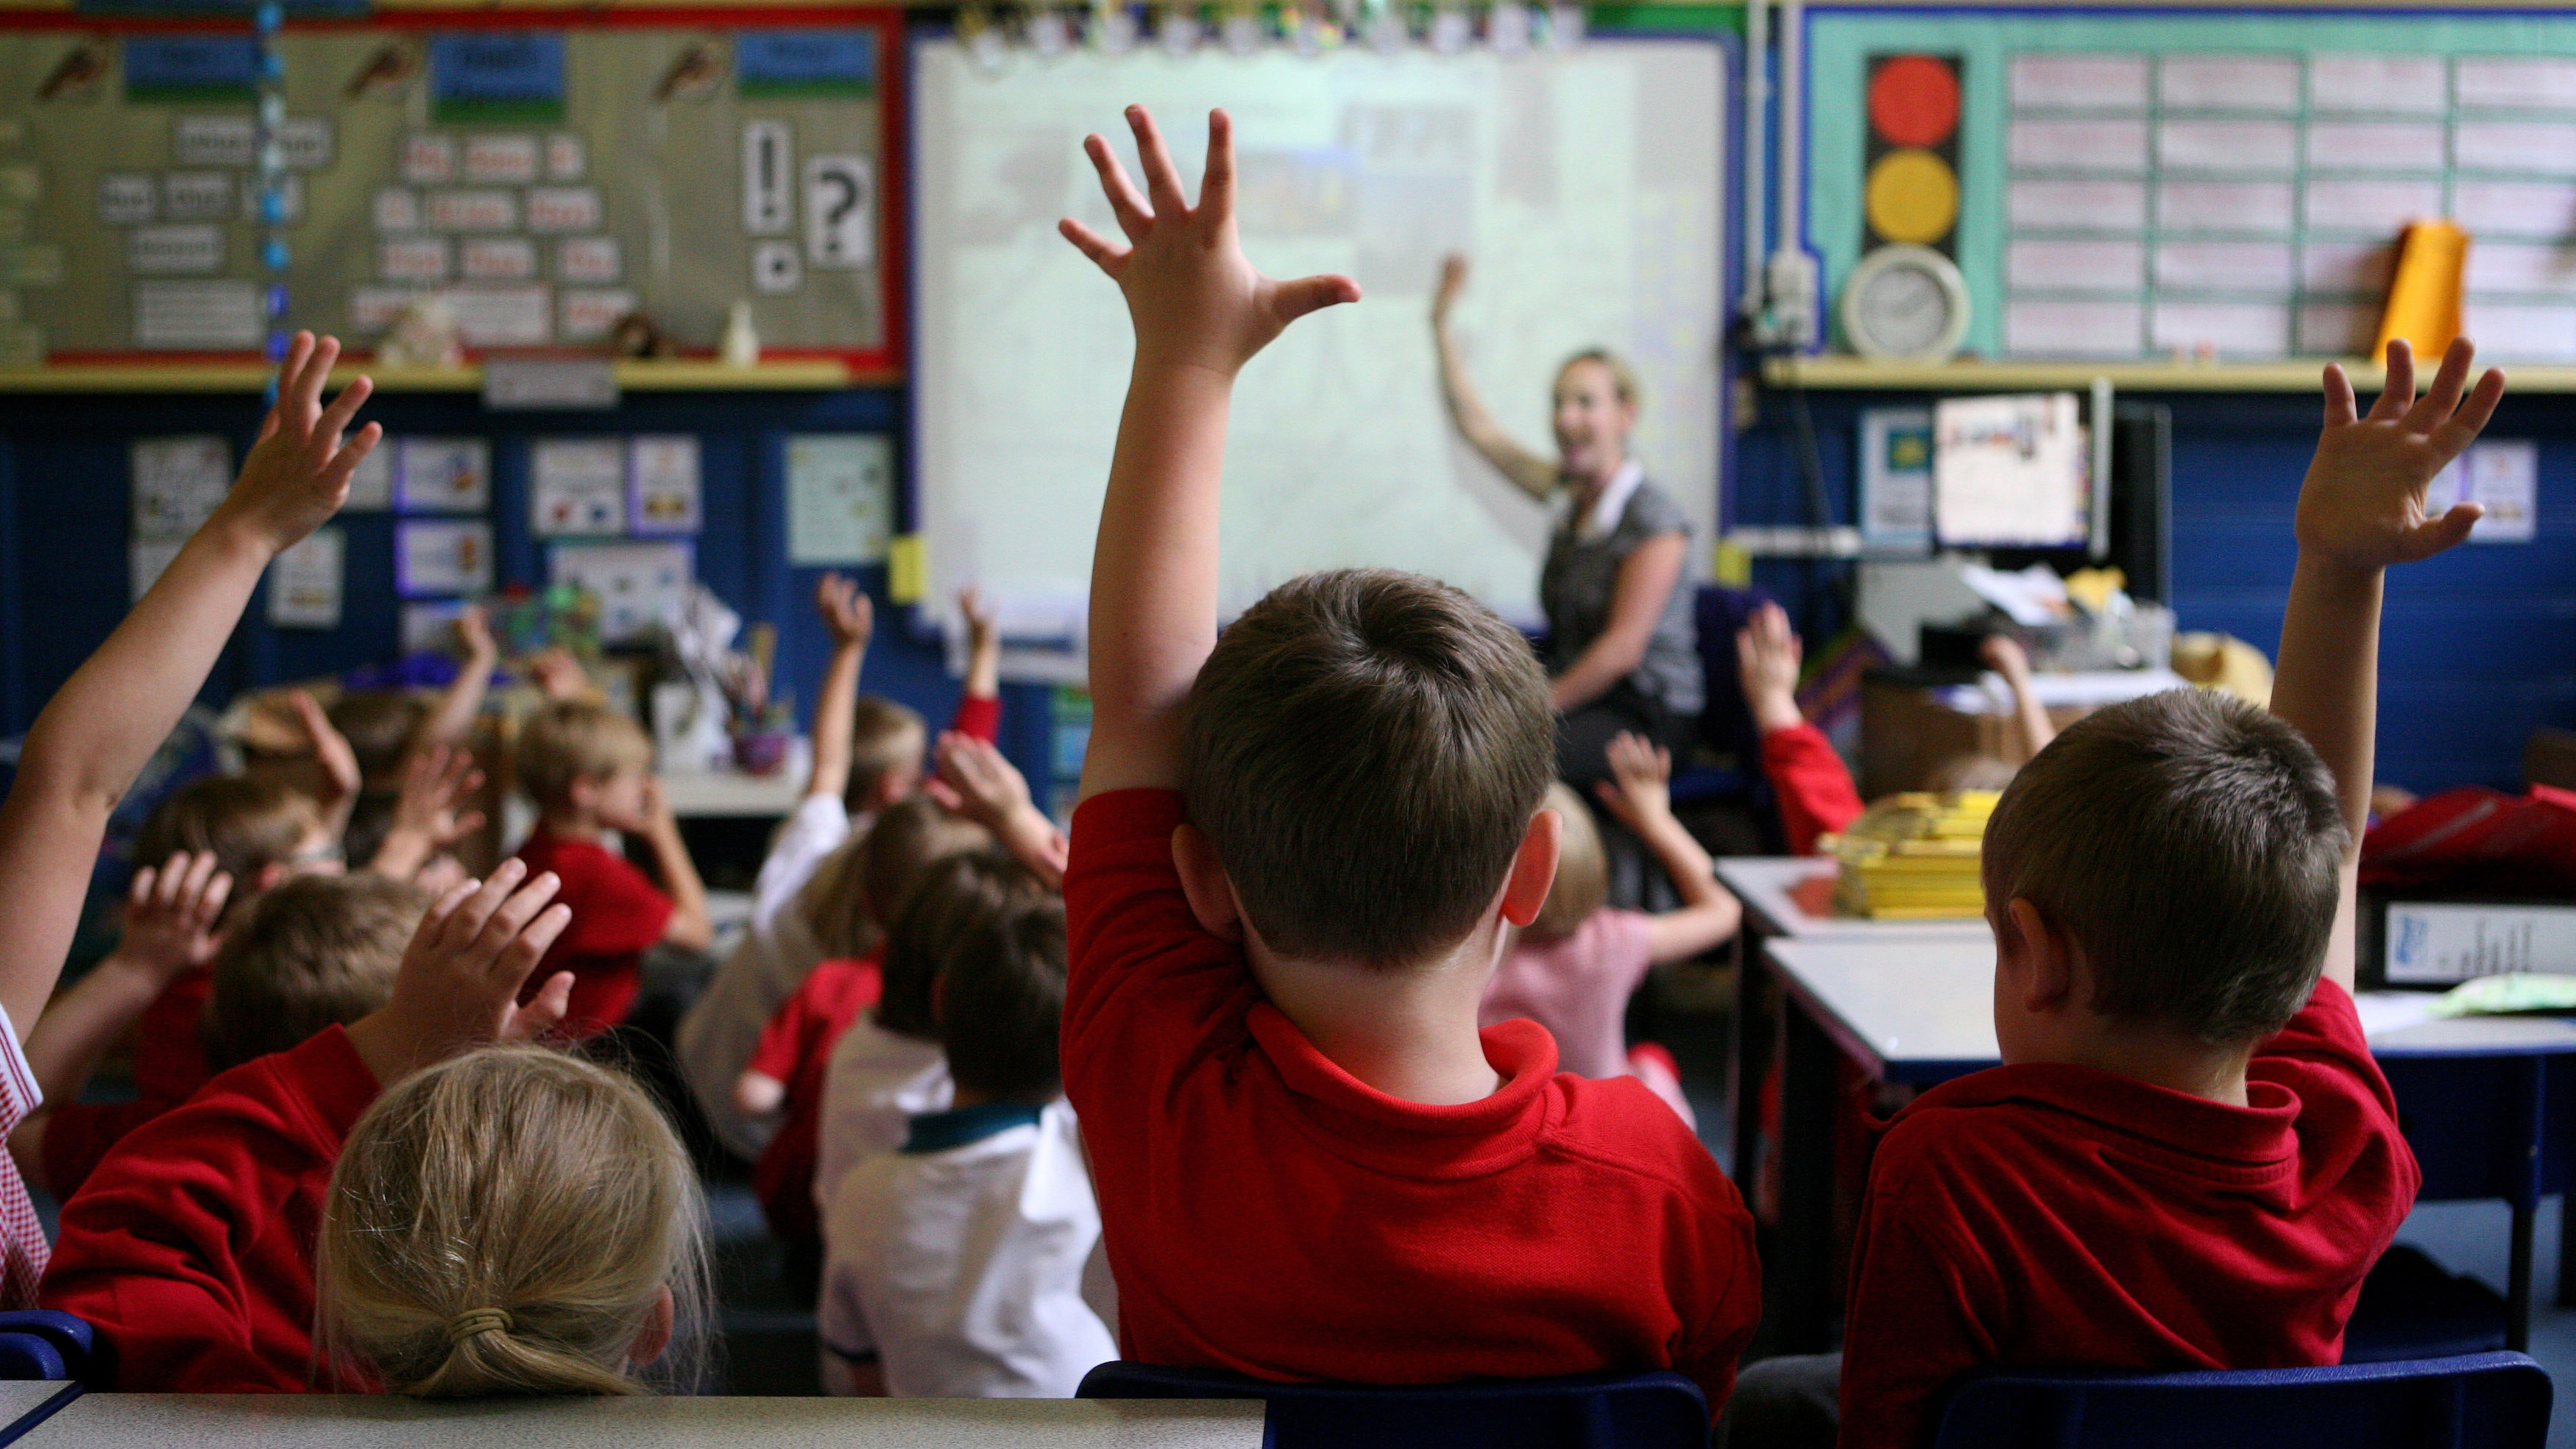 Older school pupils 'not reading challenging books'